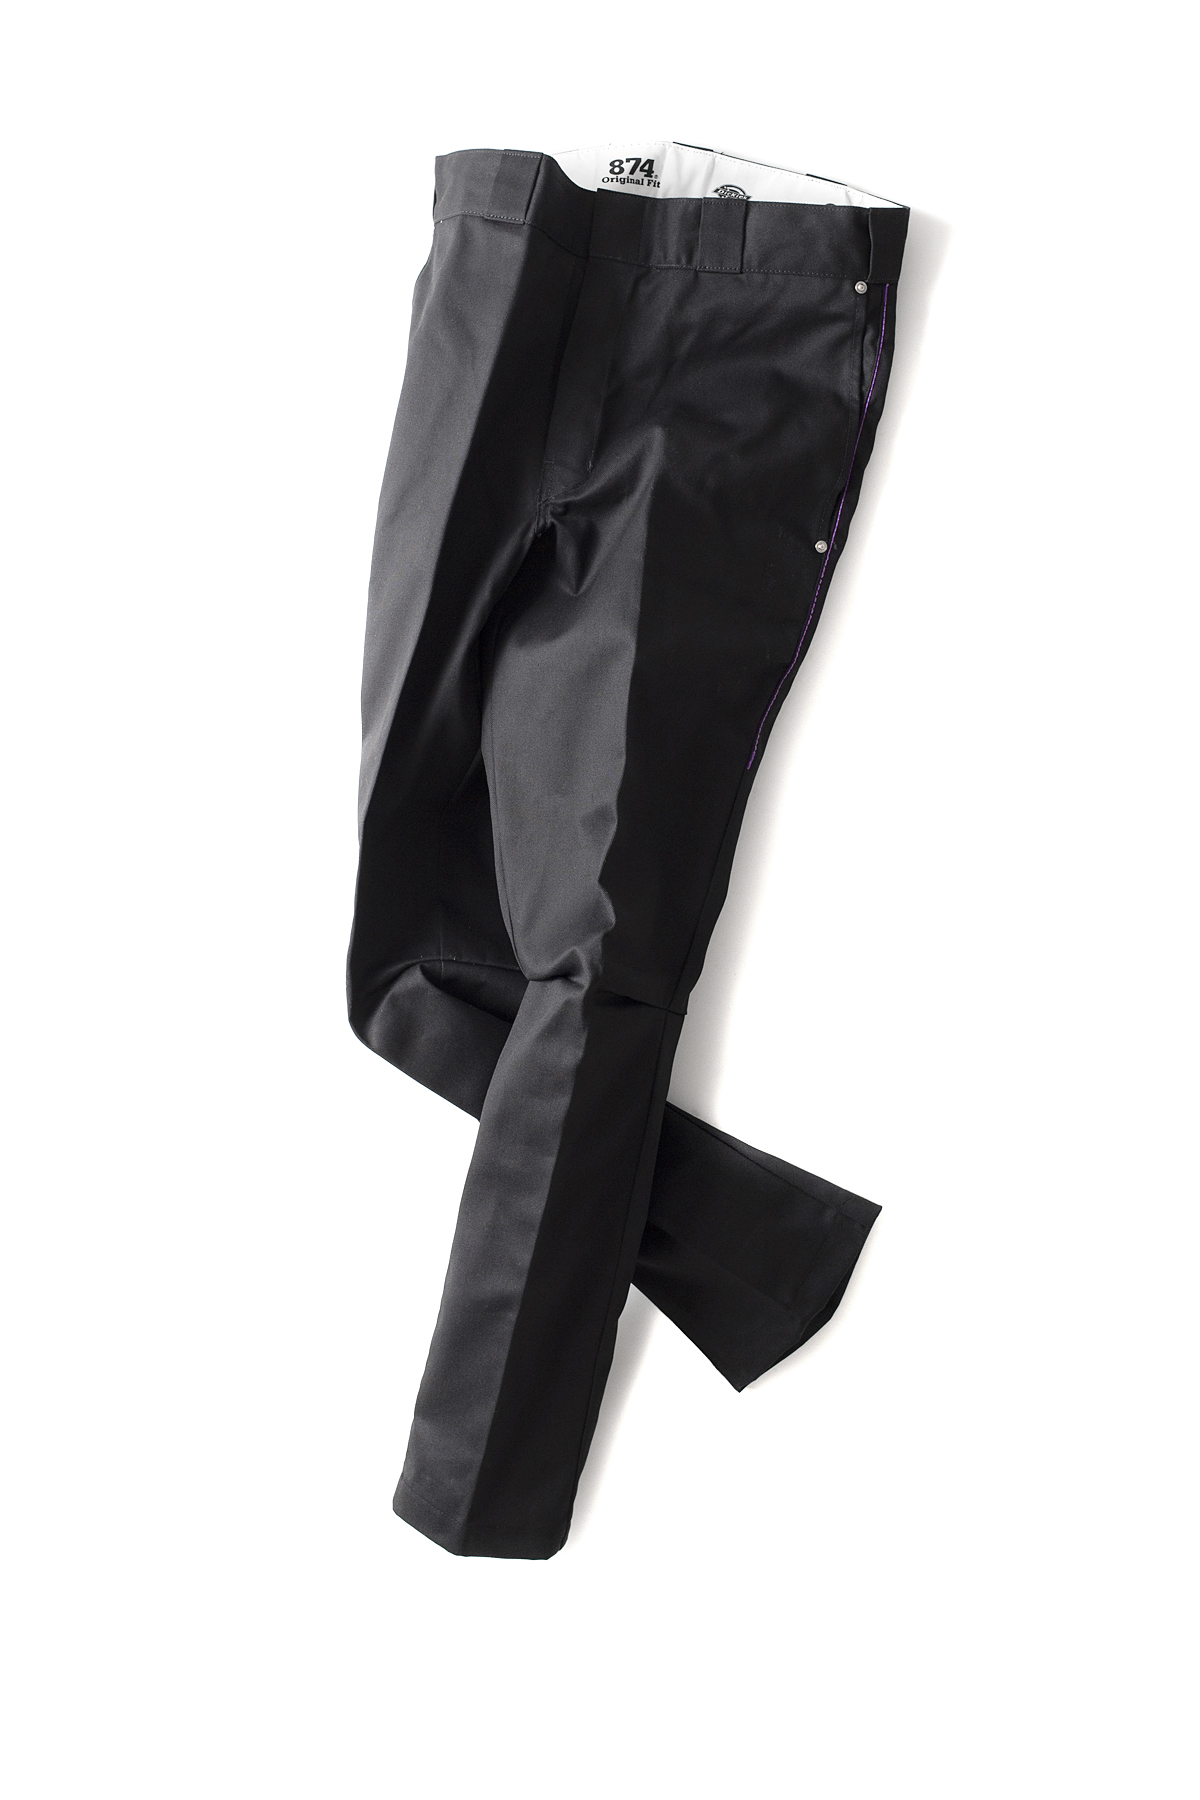 NEEDLES : Dimension Slim Dickies 874 (Black)